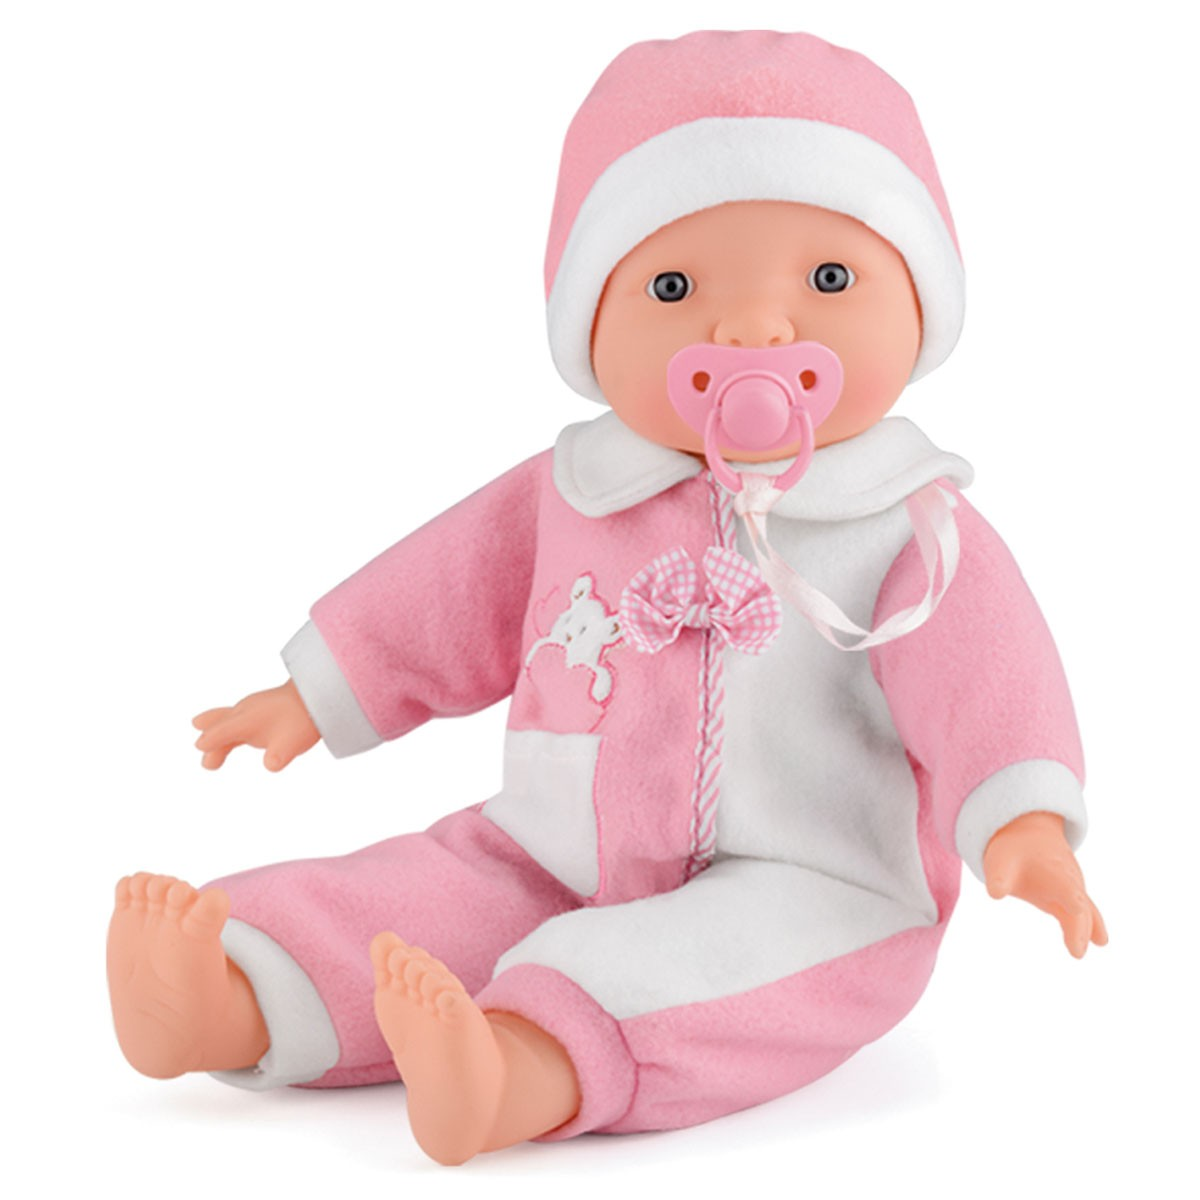 Snuggles Deluxe Baby Amelia Doll